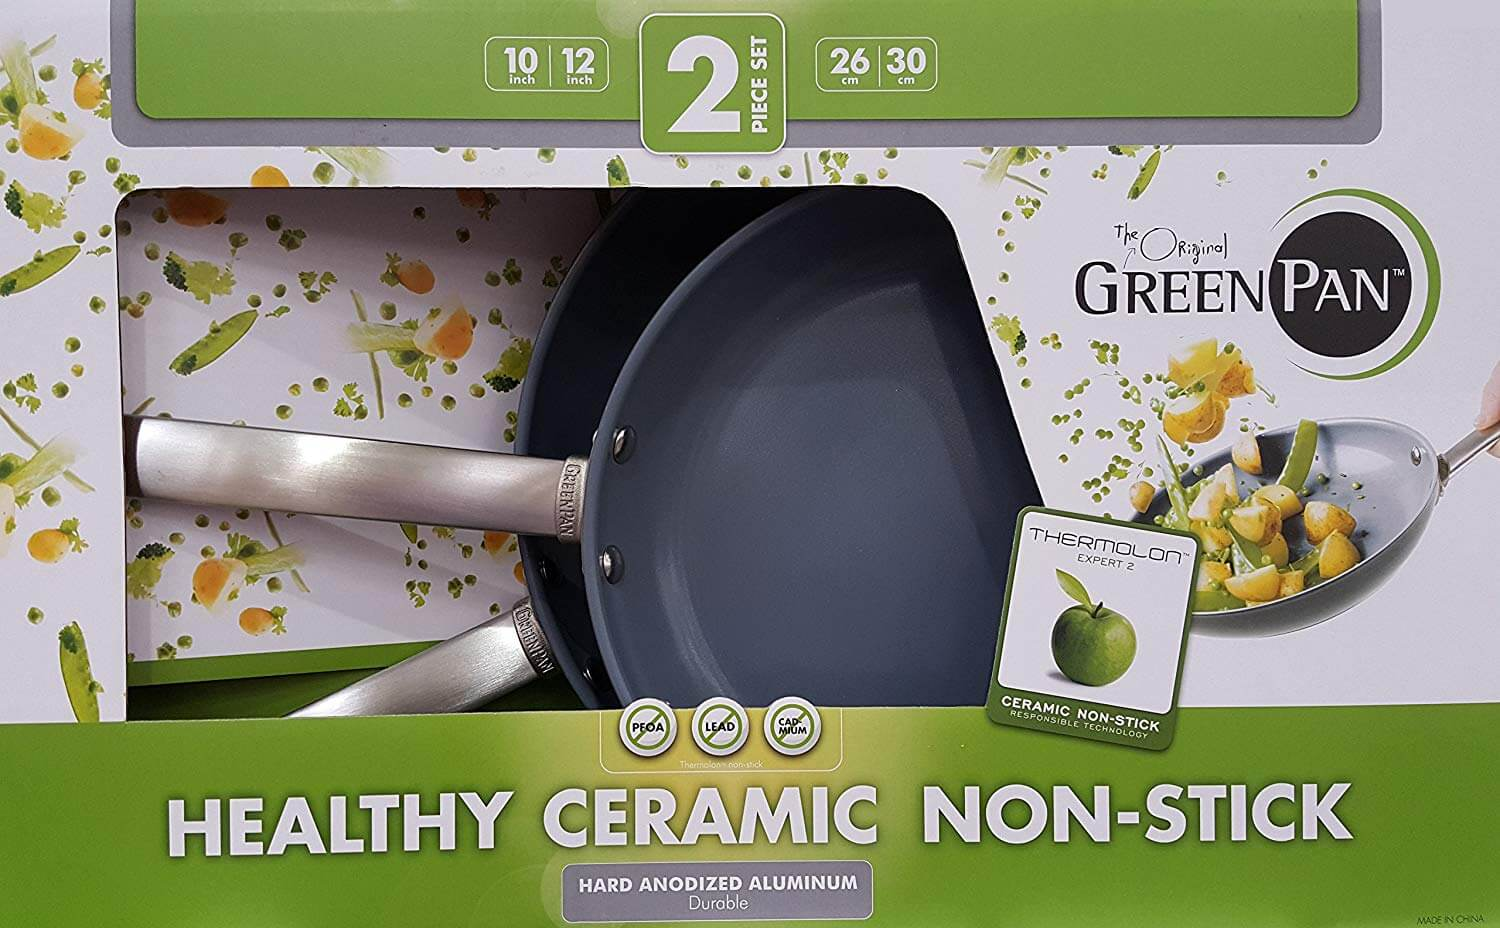 GreenPan Hard-Anodized Ceramic Skillets